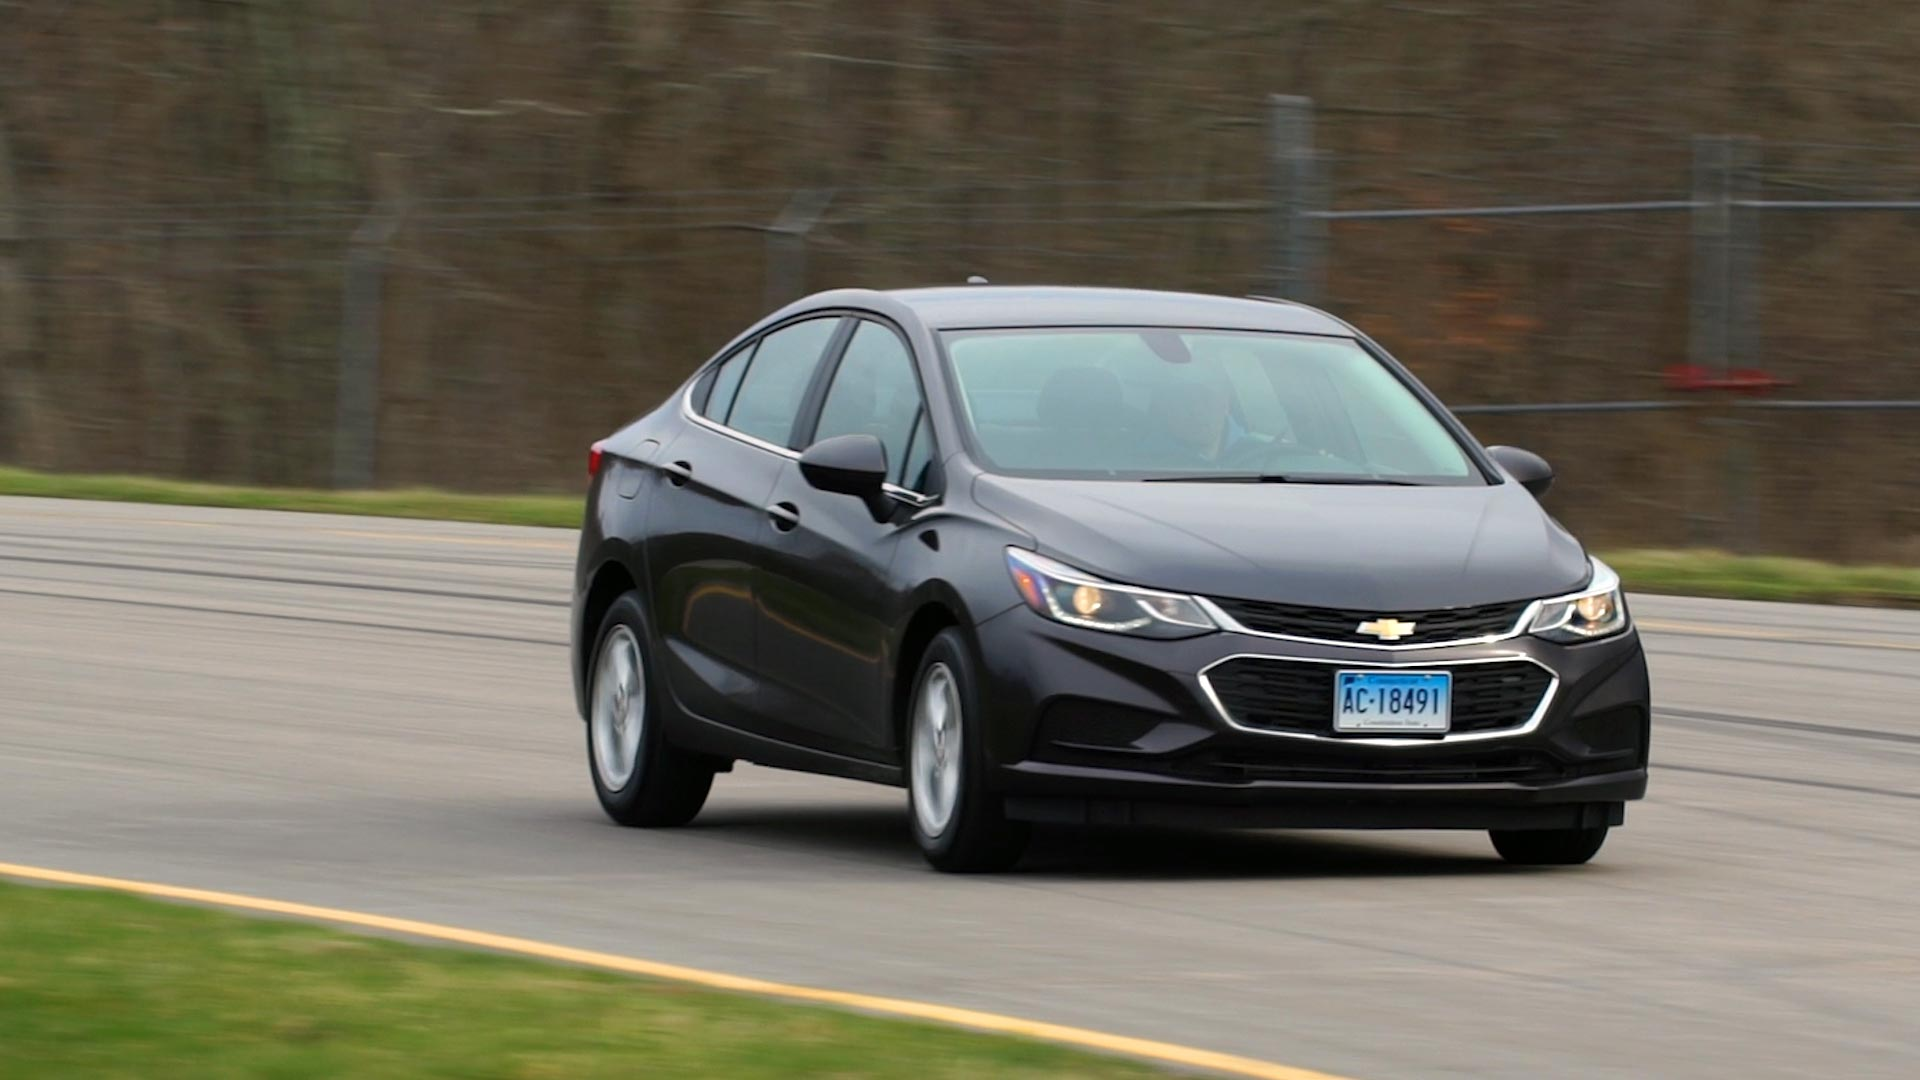 Chevrolet Cruze Owners Manual: Tires